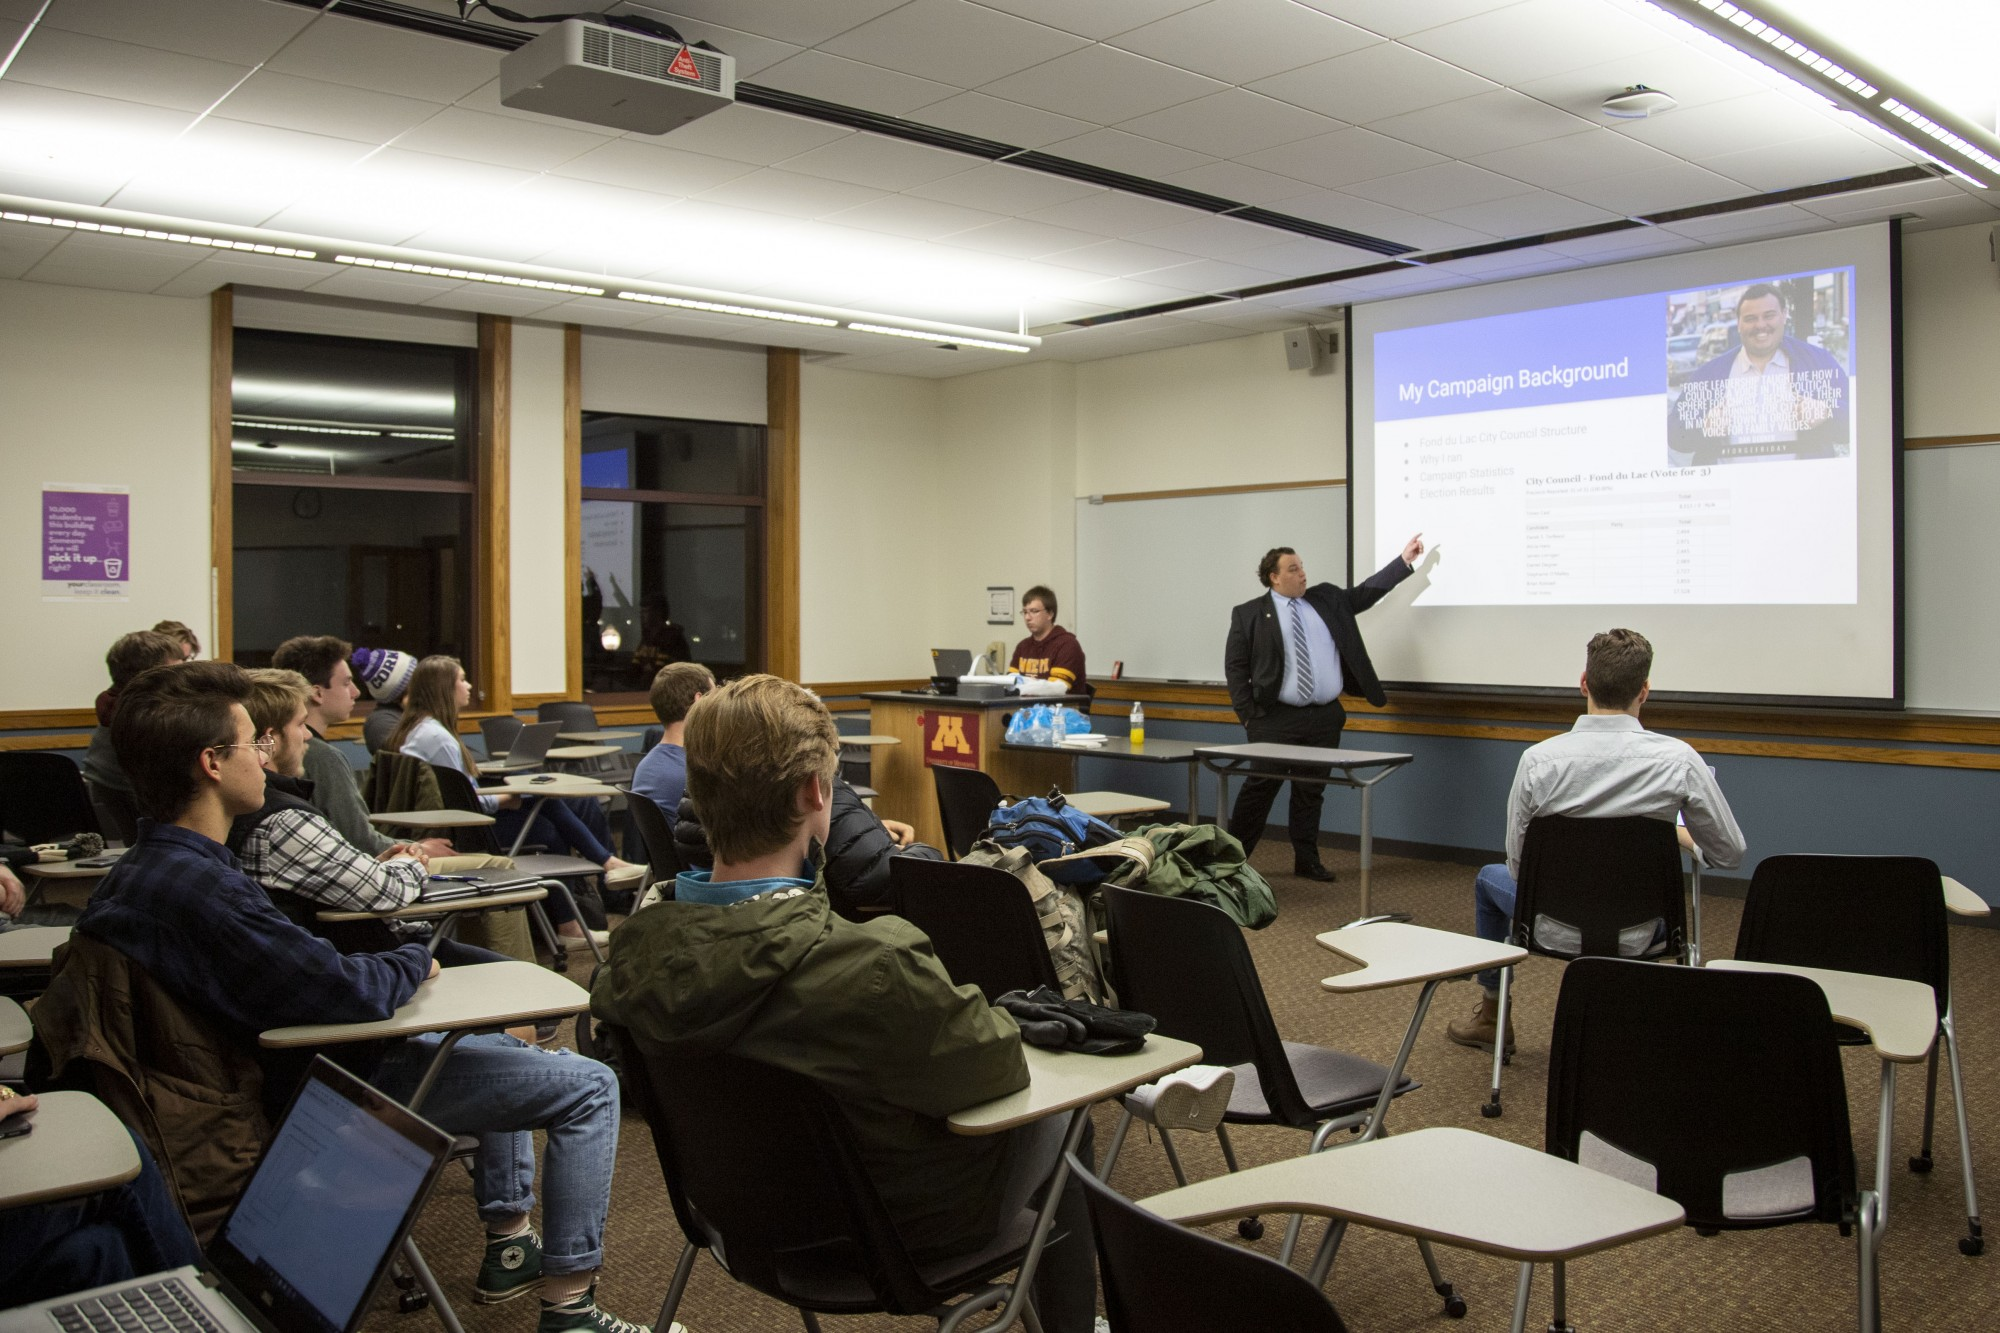 Fond Du Lac City Councilman Dan Degner presents at a College Republicans weekly meeting on Tuesday, Nov. 5.